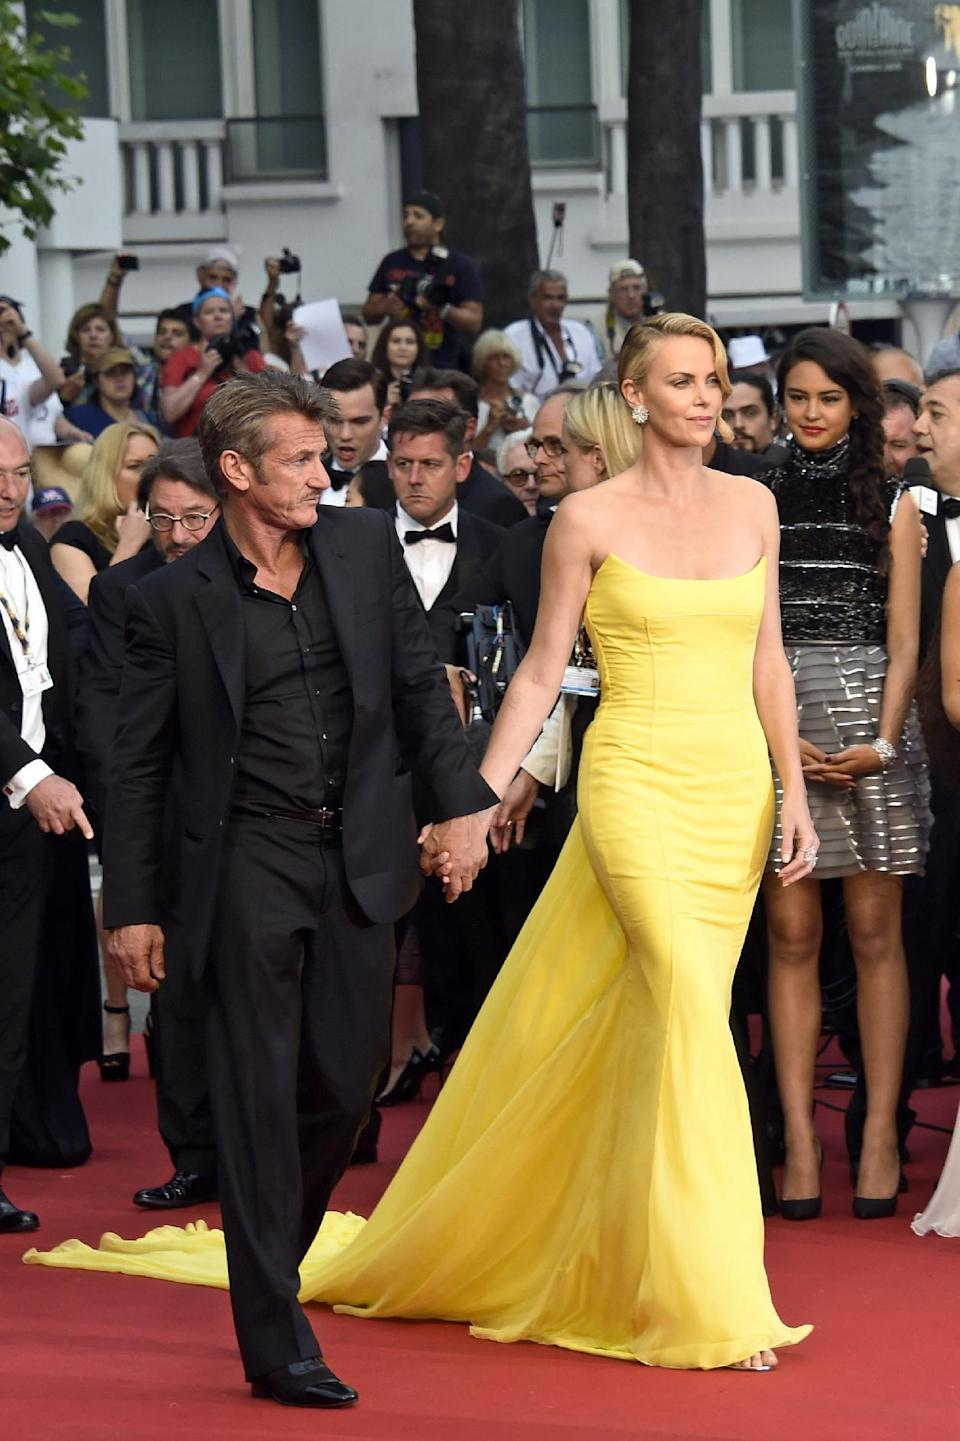 Charlize Theron was among the many stars dressed in bright colors at Cannes this year, here in a lemon yellow gown by Dior Couture.